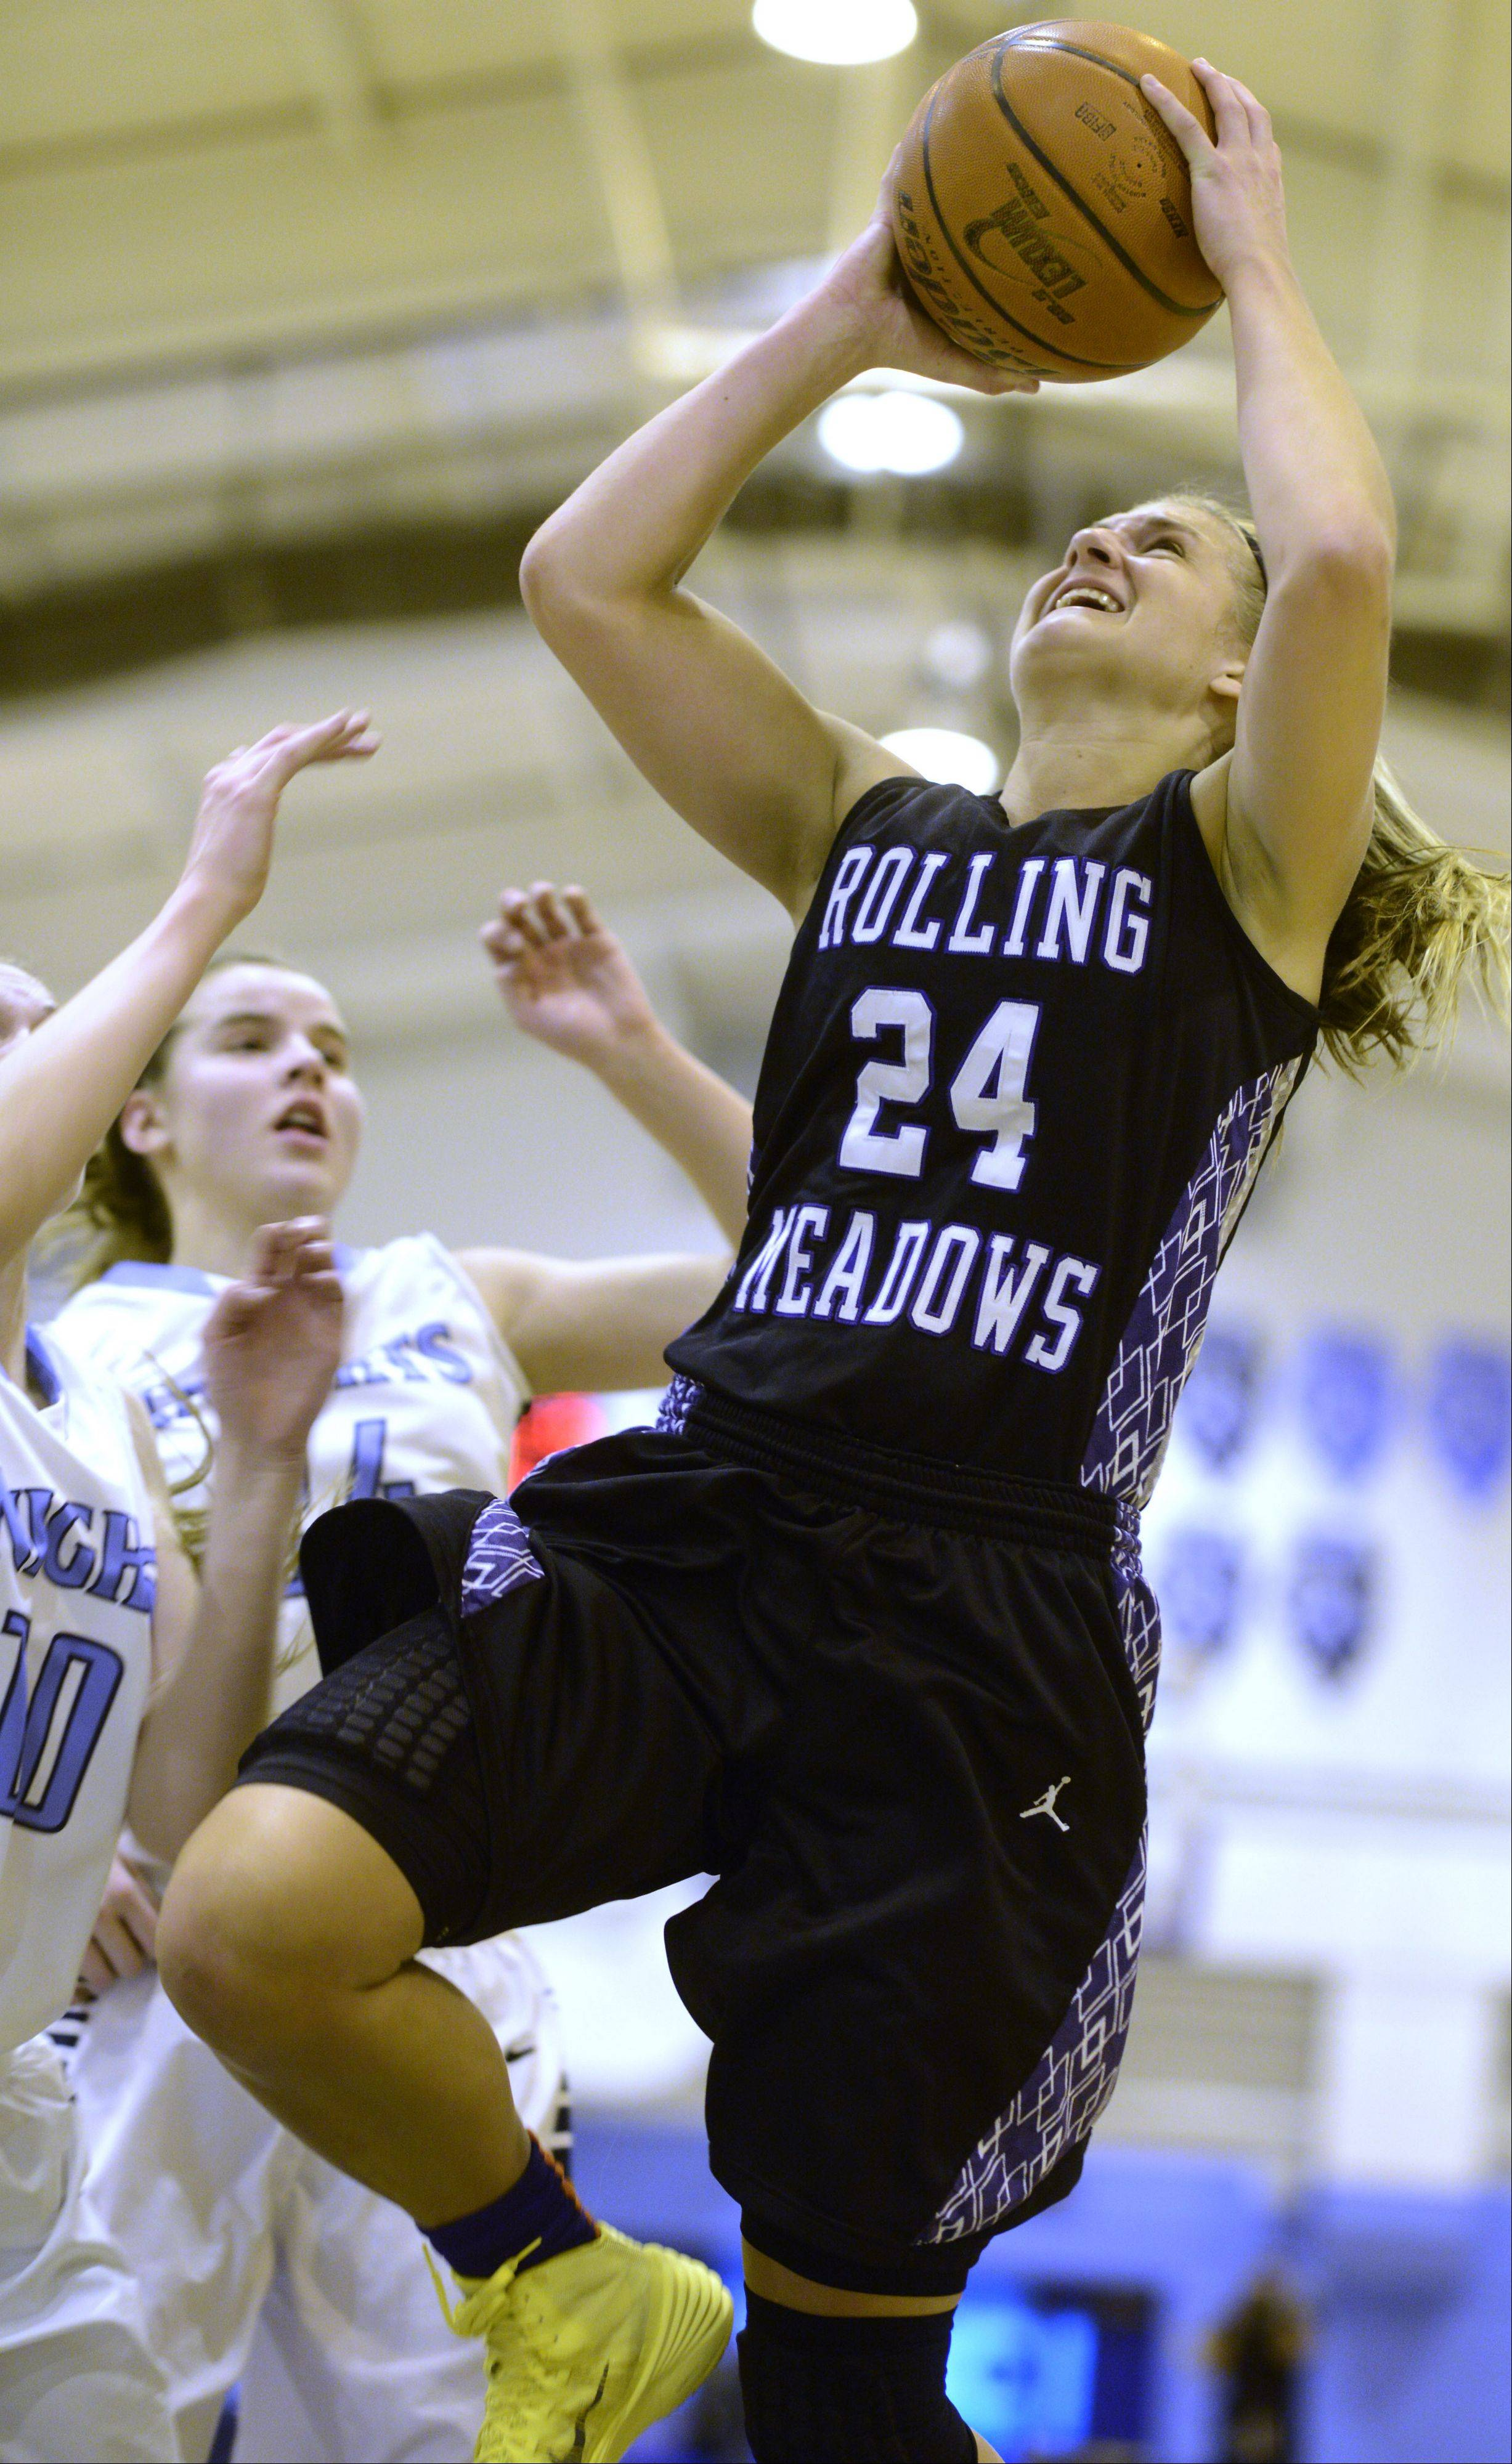 Rolling Meadows' Alexis Glasgow makes a strong move to the basket during Saturday's game against Prospect.